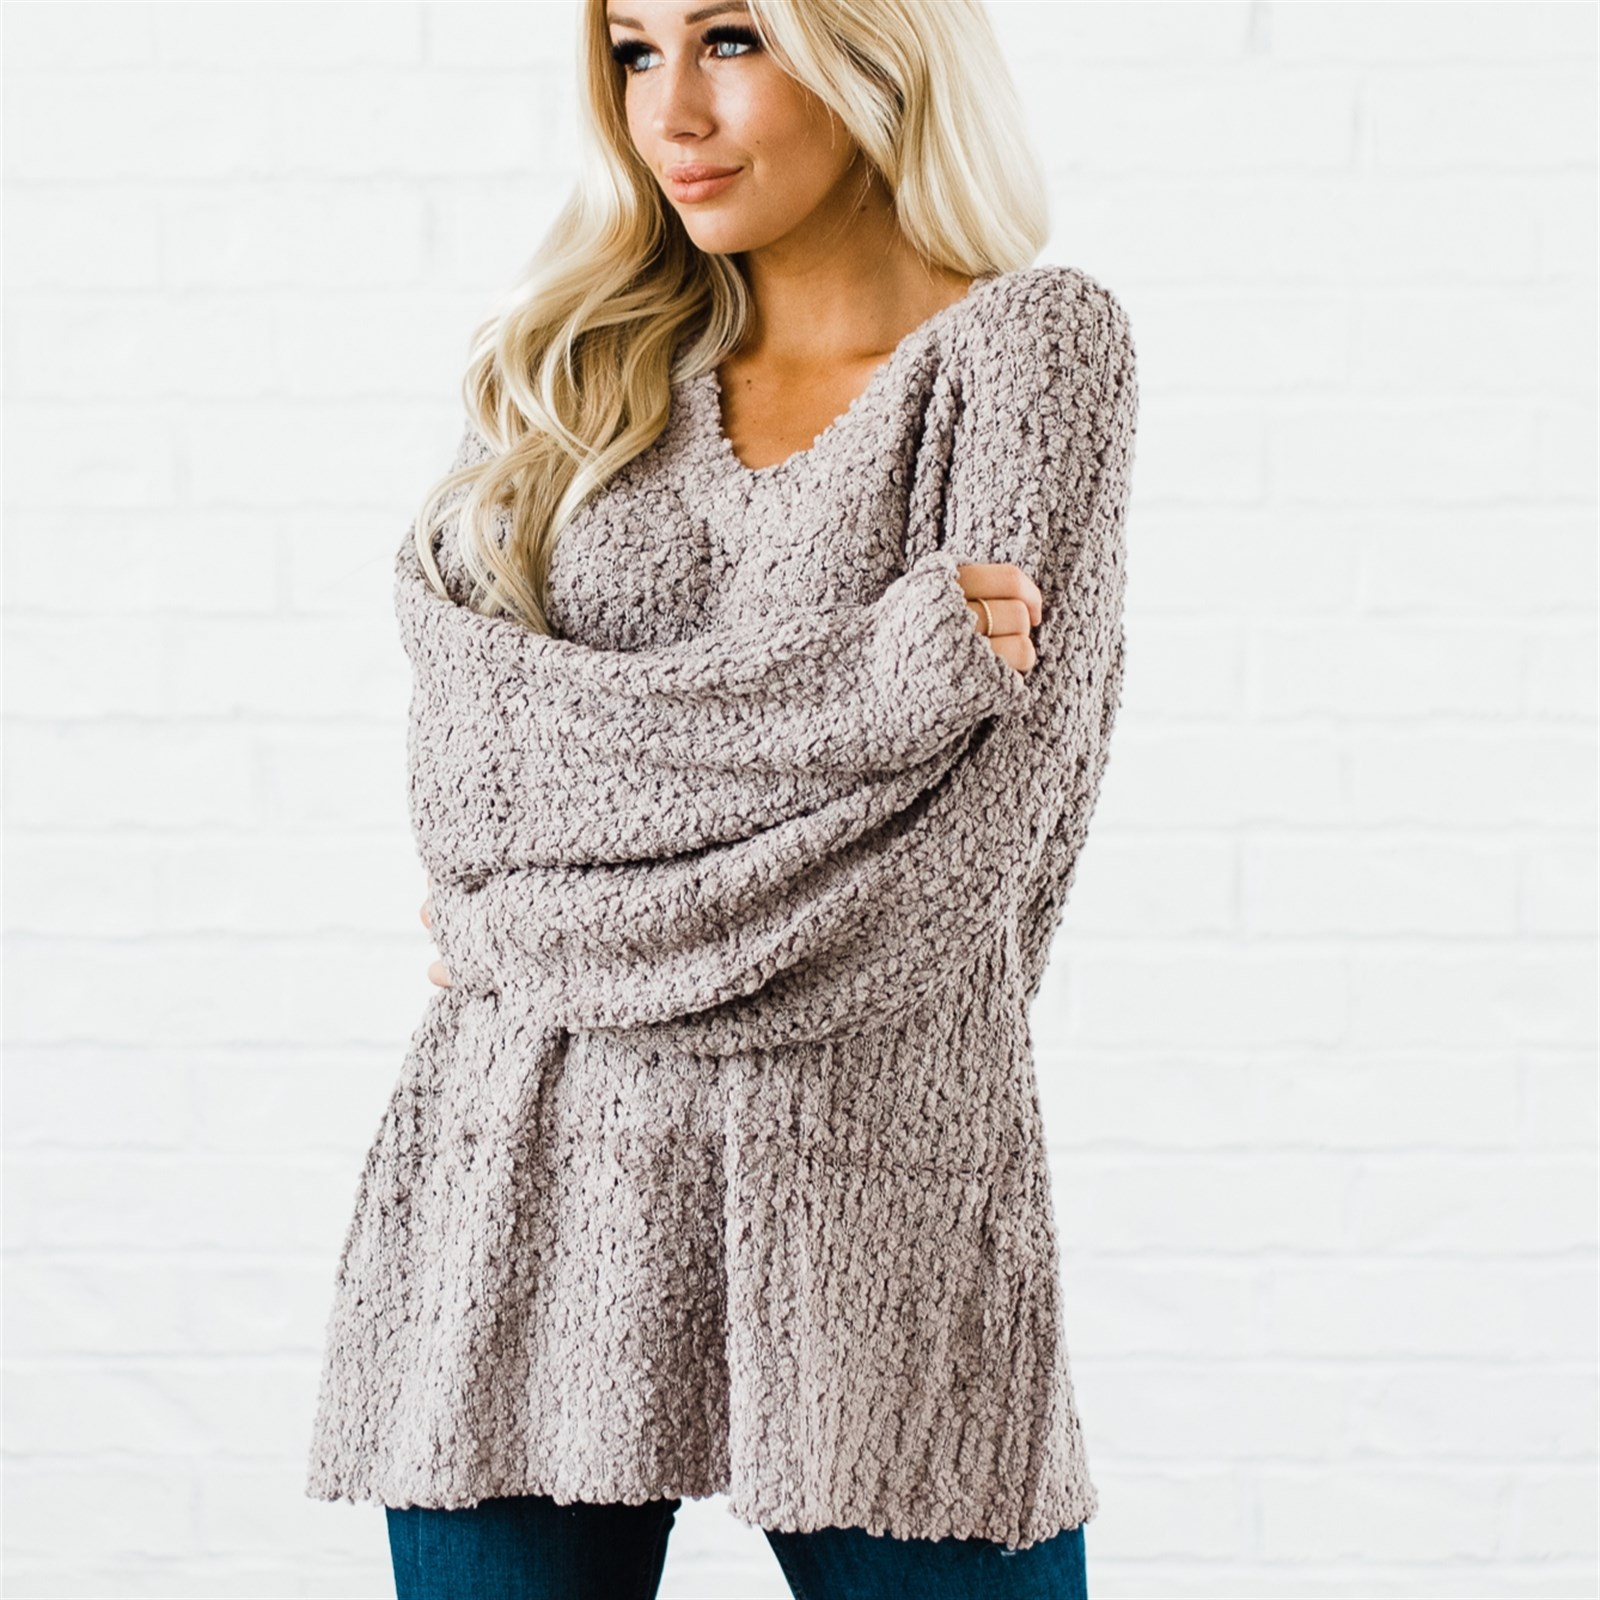 Chill Nights Sweater